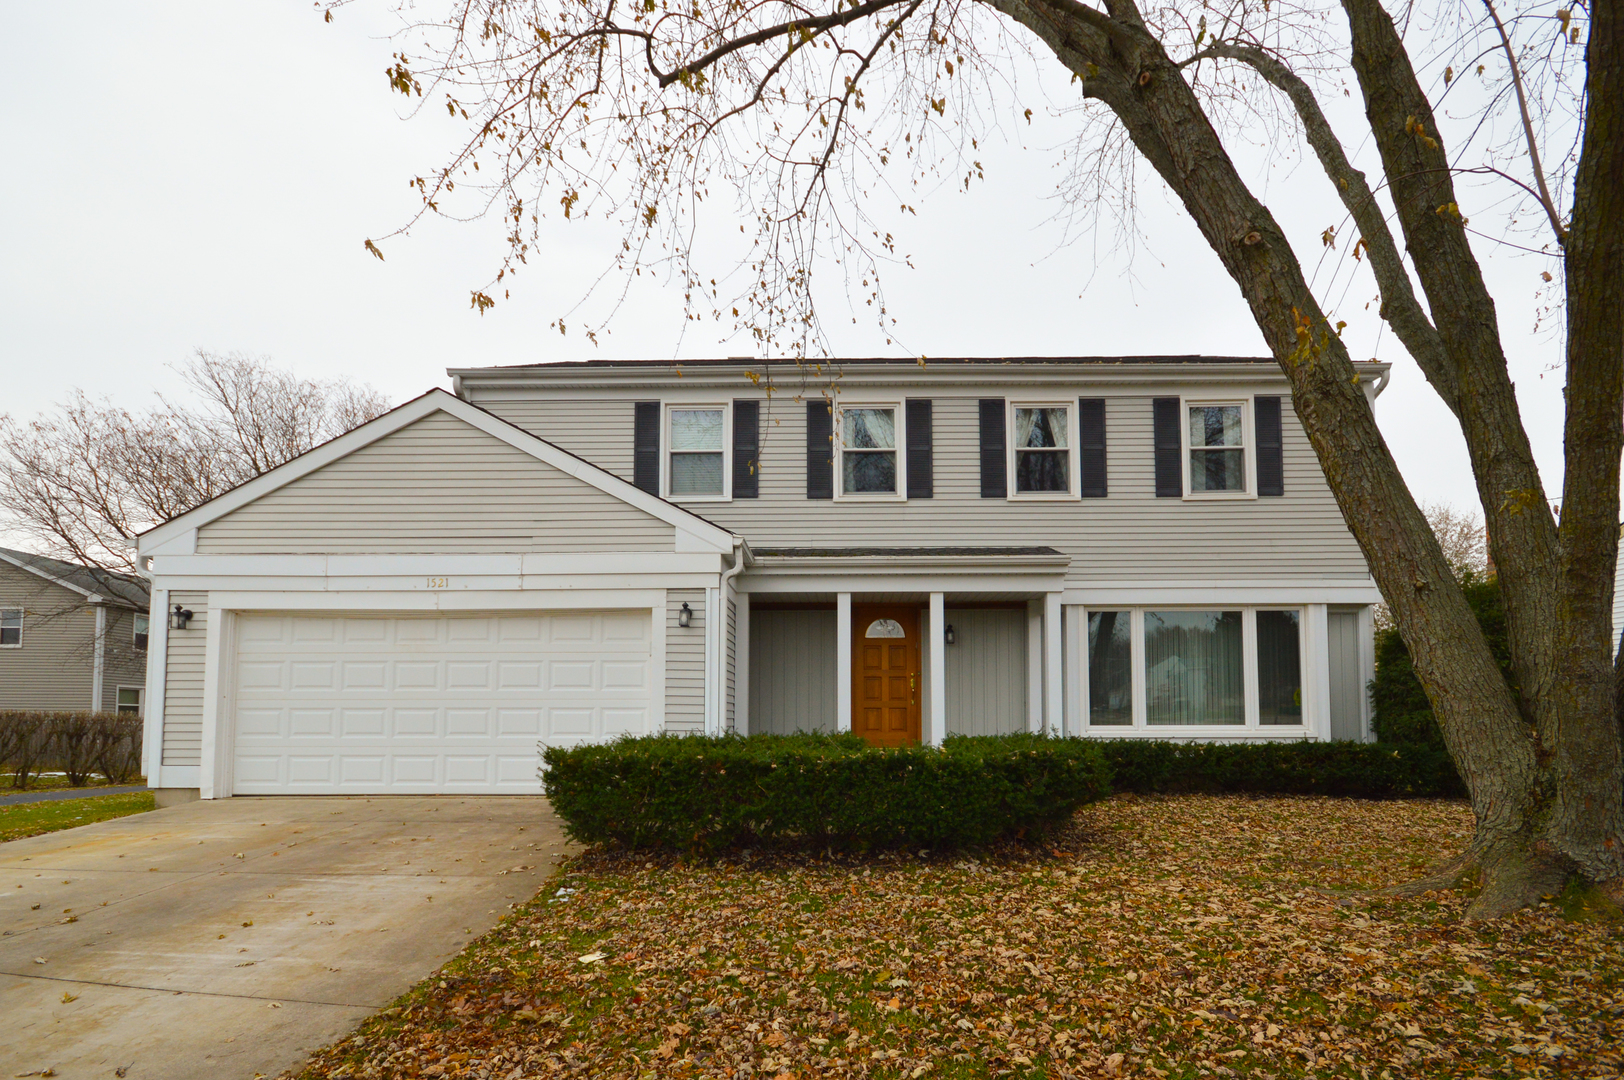 INCREDIBLE VALUE! Gorgeous Arlington model in highly sought Strathmore Grove East. Amazing location right across from Prairie Elementary. Four spacious bedrooms, 2.1 baths, and a full finished basement. Sold while on the private network.